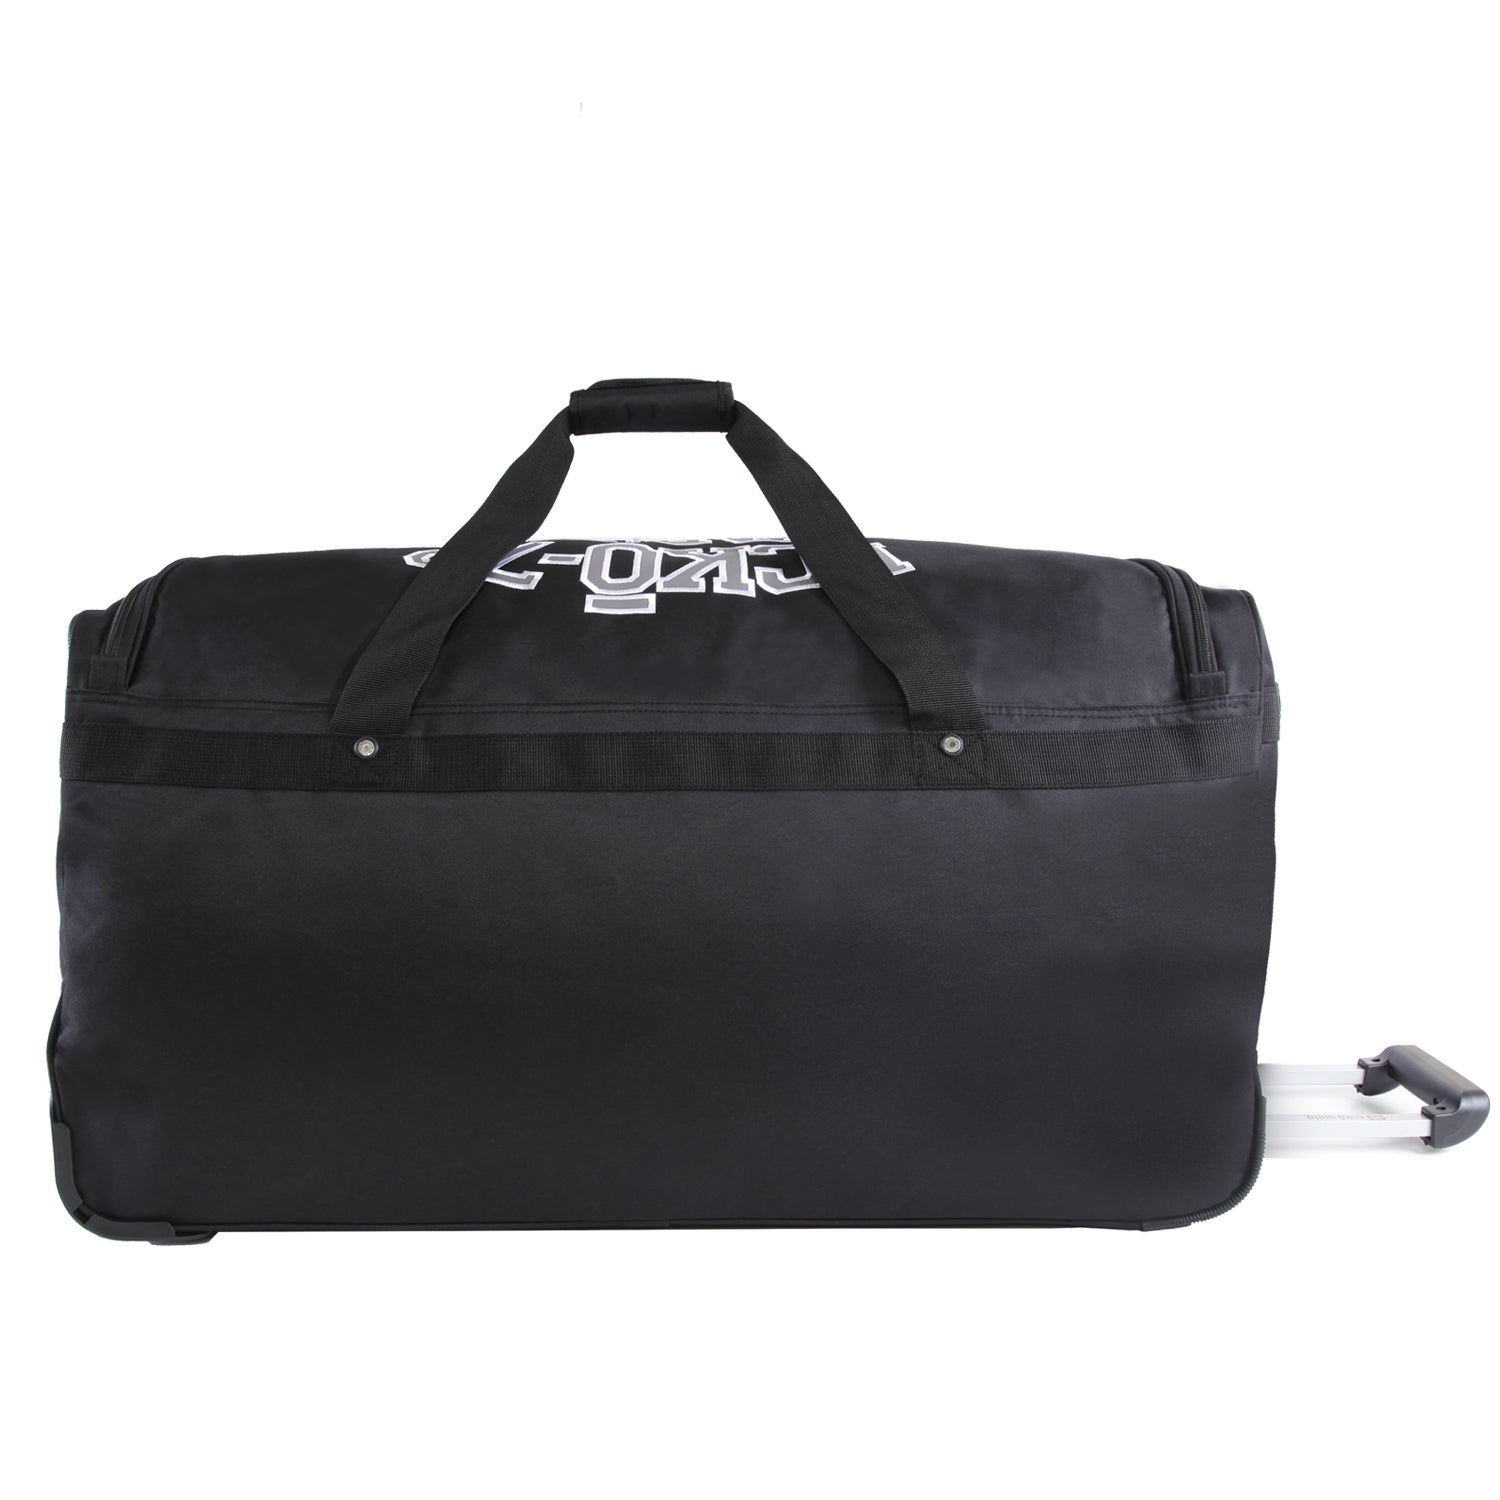 6b5fd966dbfc Shop Ecko Unlimited Alpha Blue 32-inch Large Rolling Duffel Bag - Free  Shipping Today - Overstock - 13935926